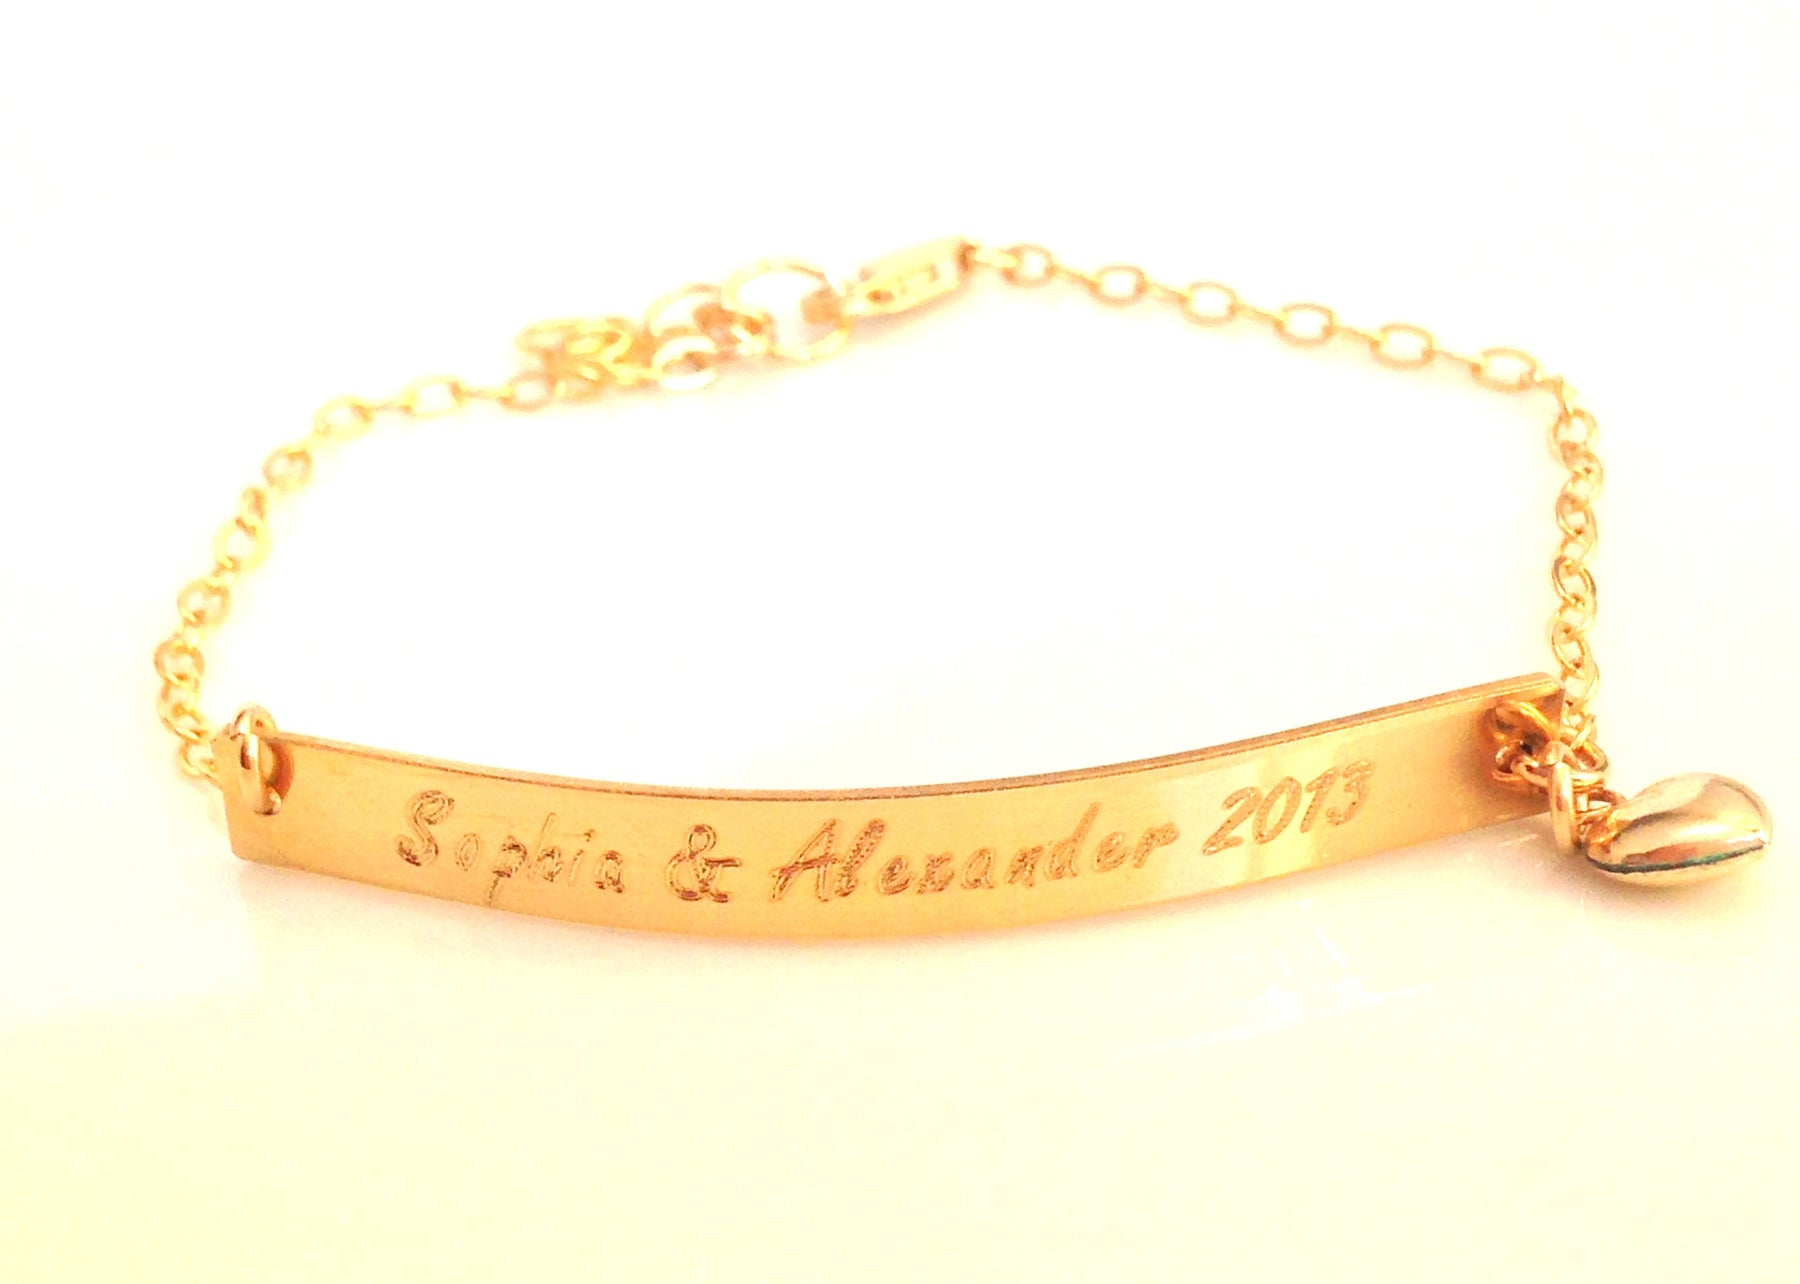 bar bracelet products andfersand brotherhood gold